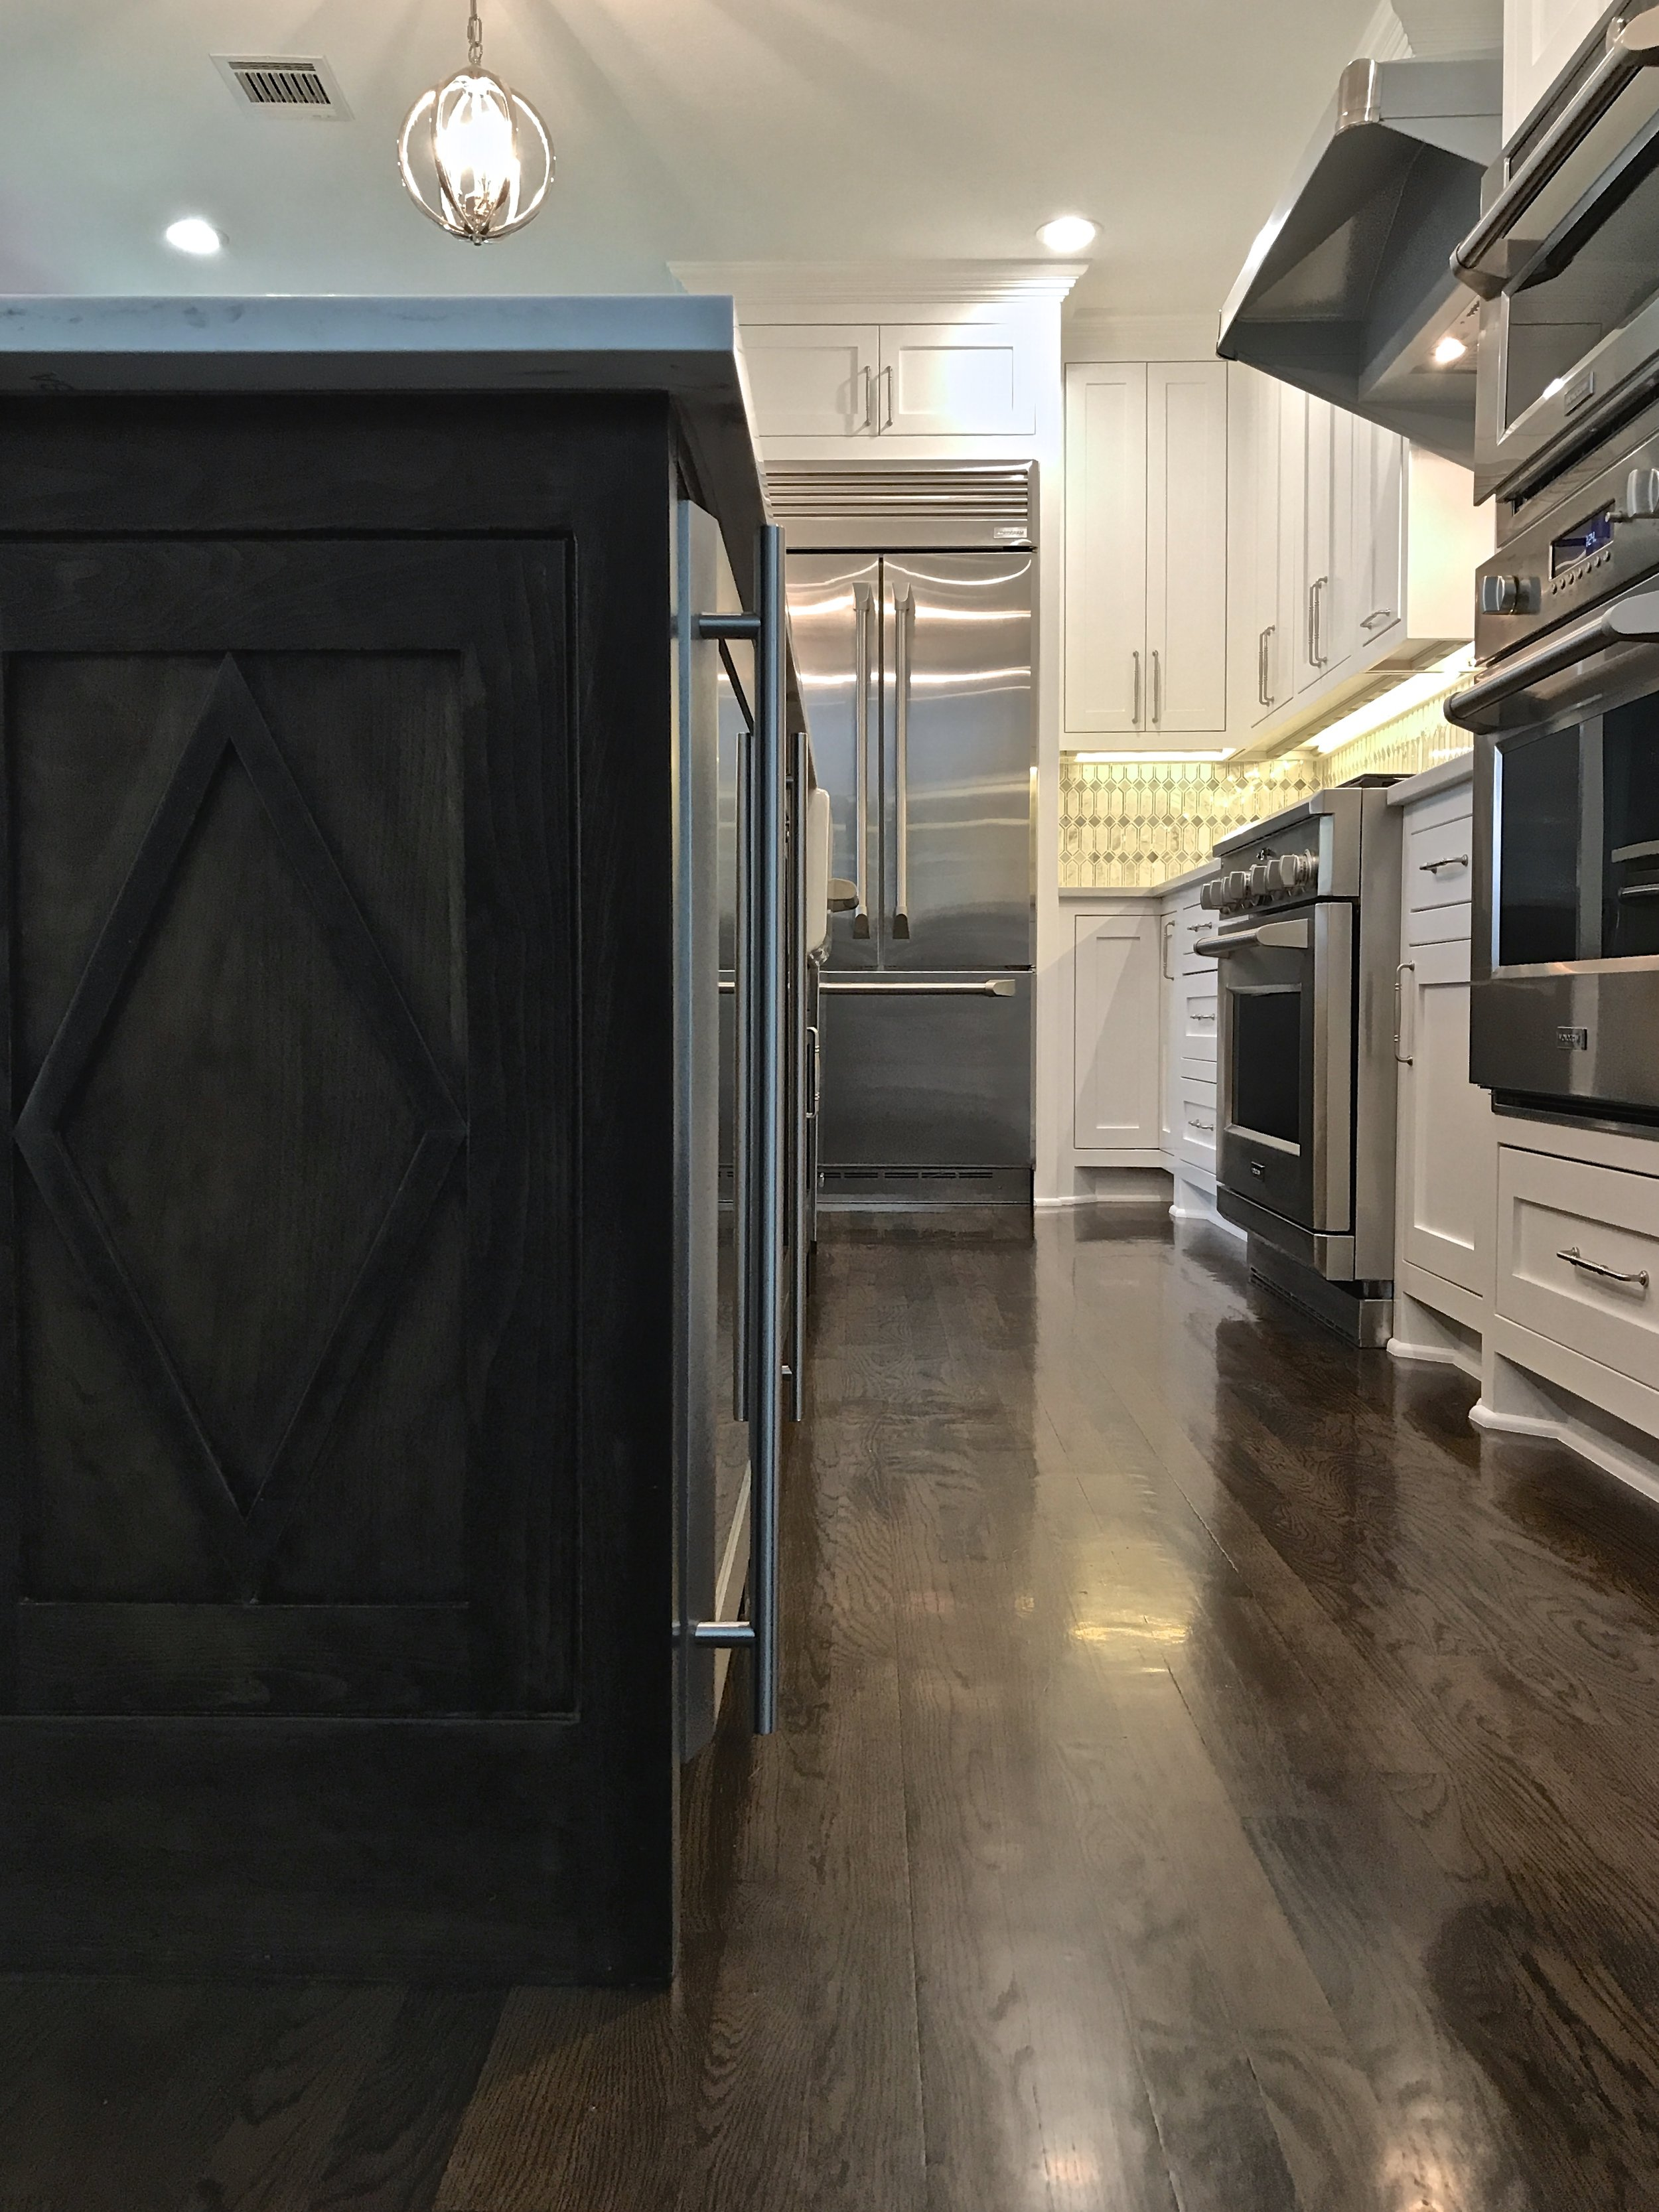 Stainless steel KitchenAid appliances, LED lighting, and under cabinet outlet strips- this is what I mean when I say historical, but with modern amenitities.